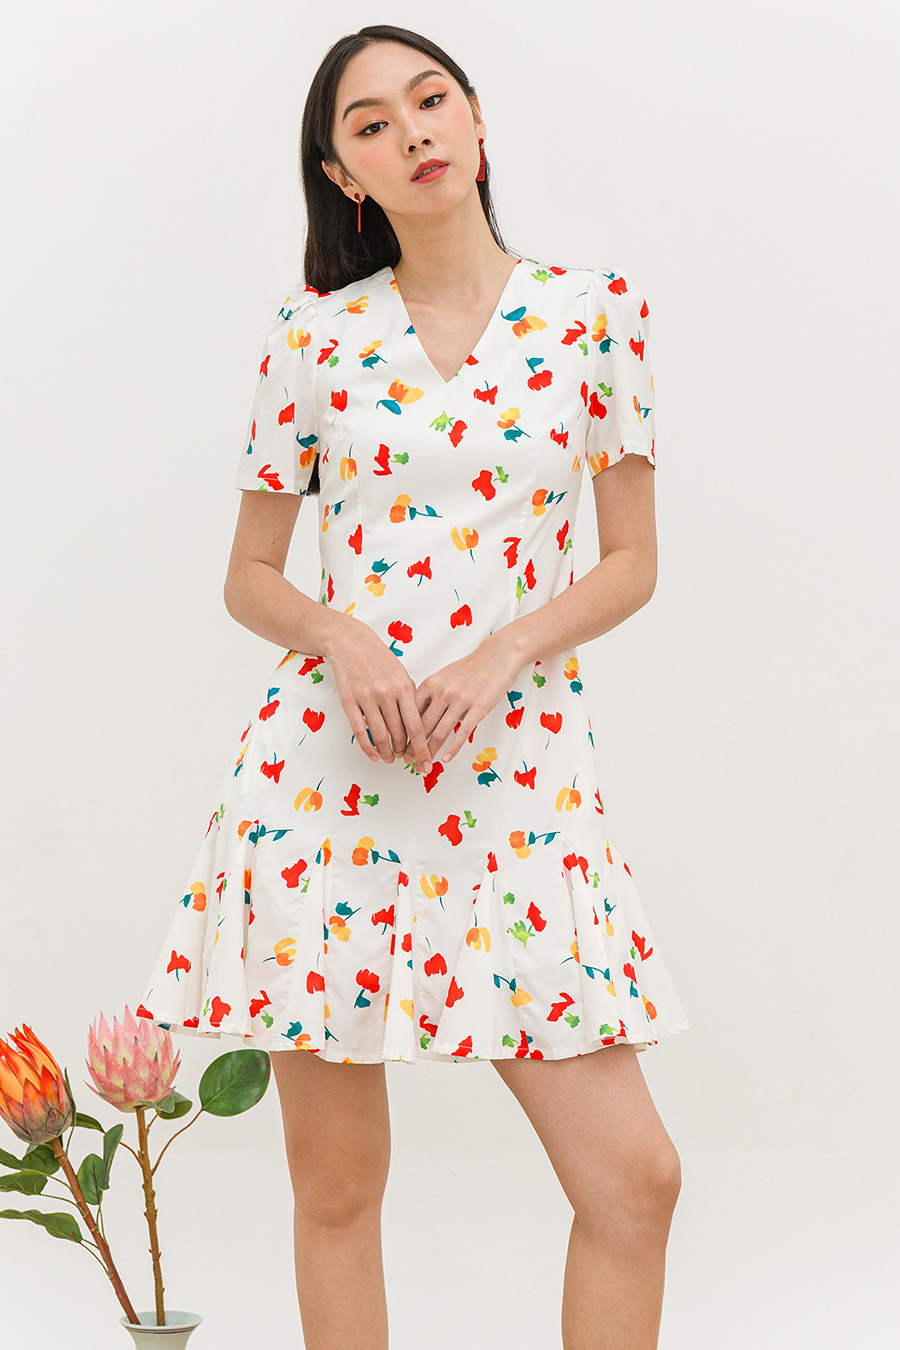 *RESTOCKED* ROXANE DRESS - ROSAMEL  [BY MODPARADE]